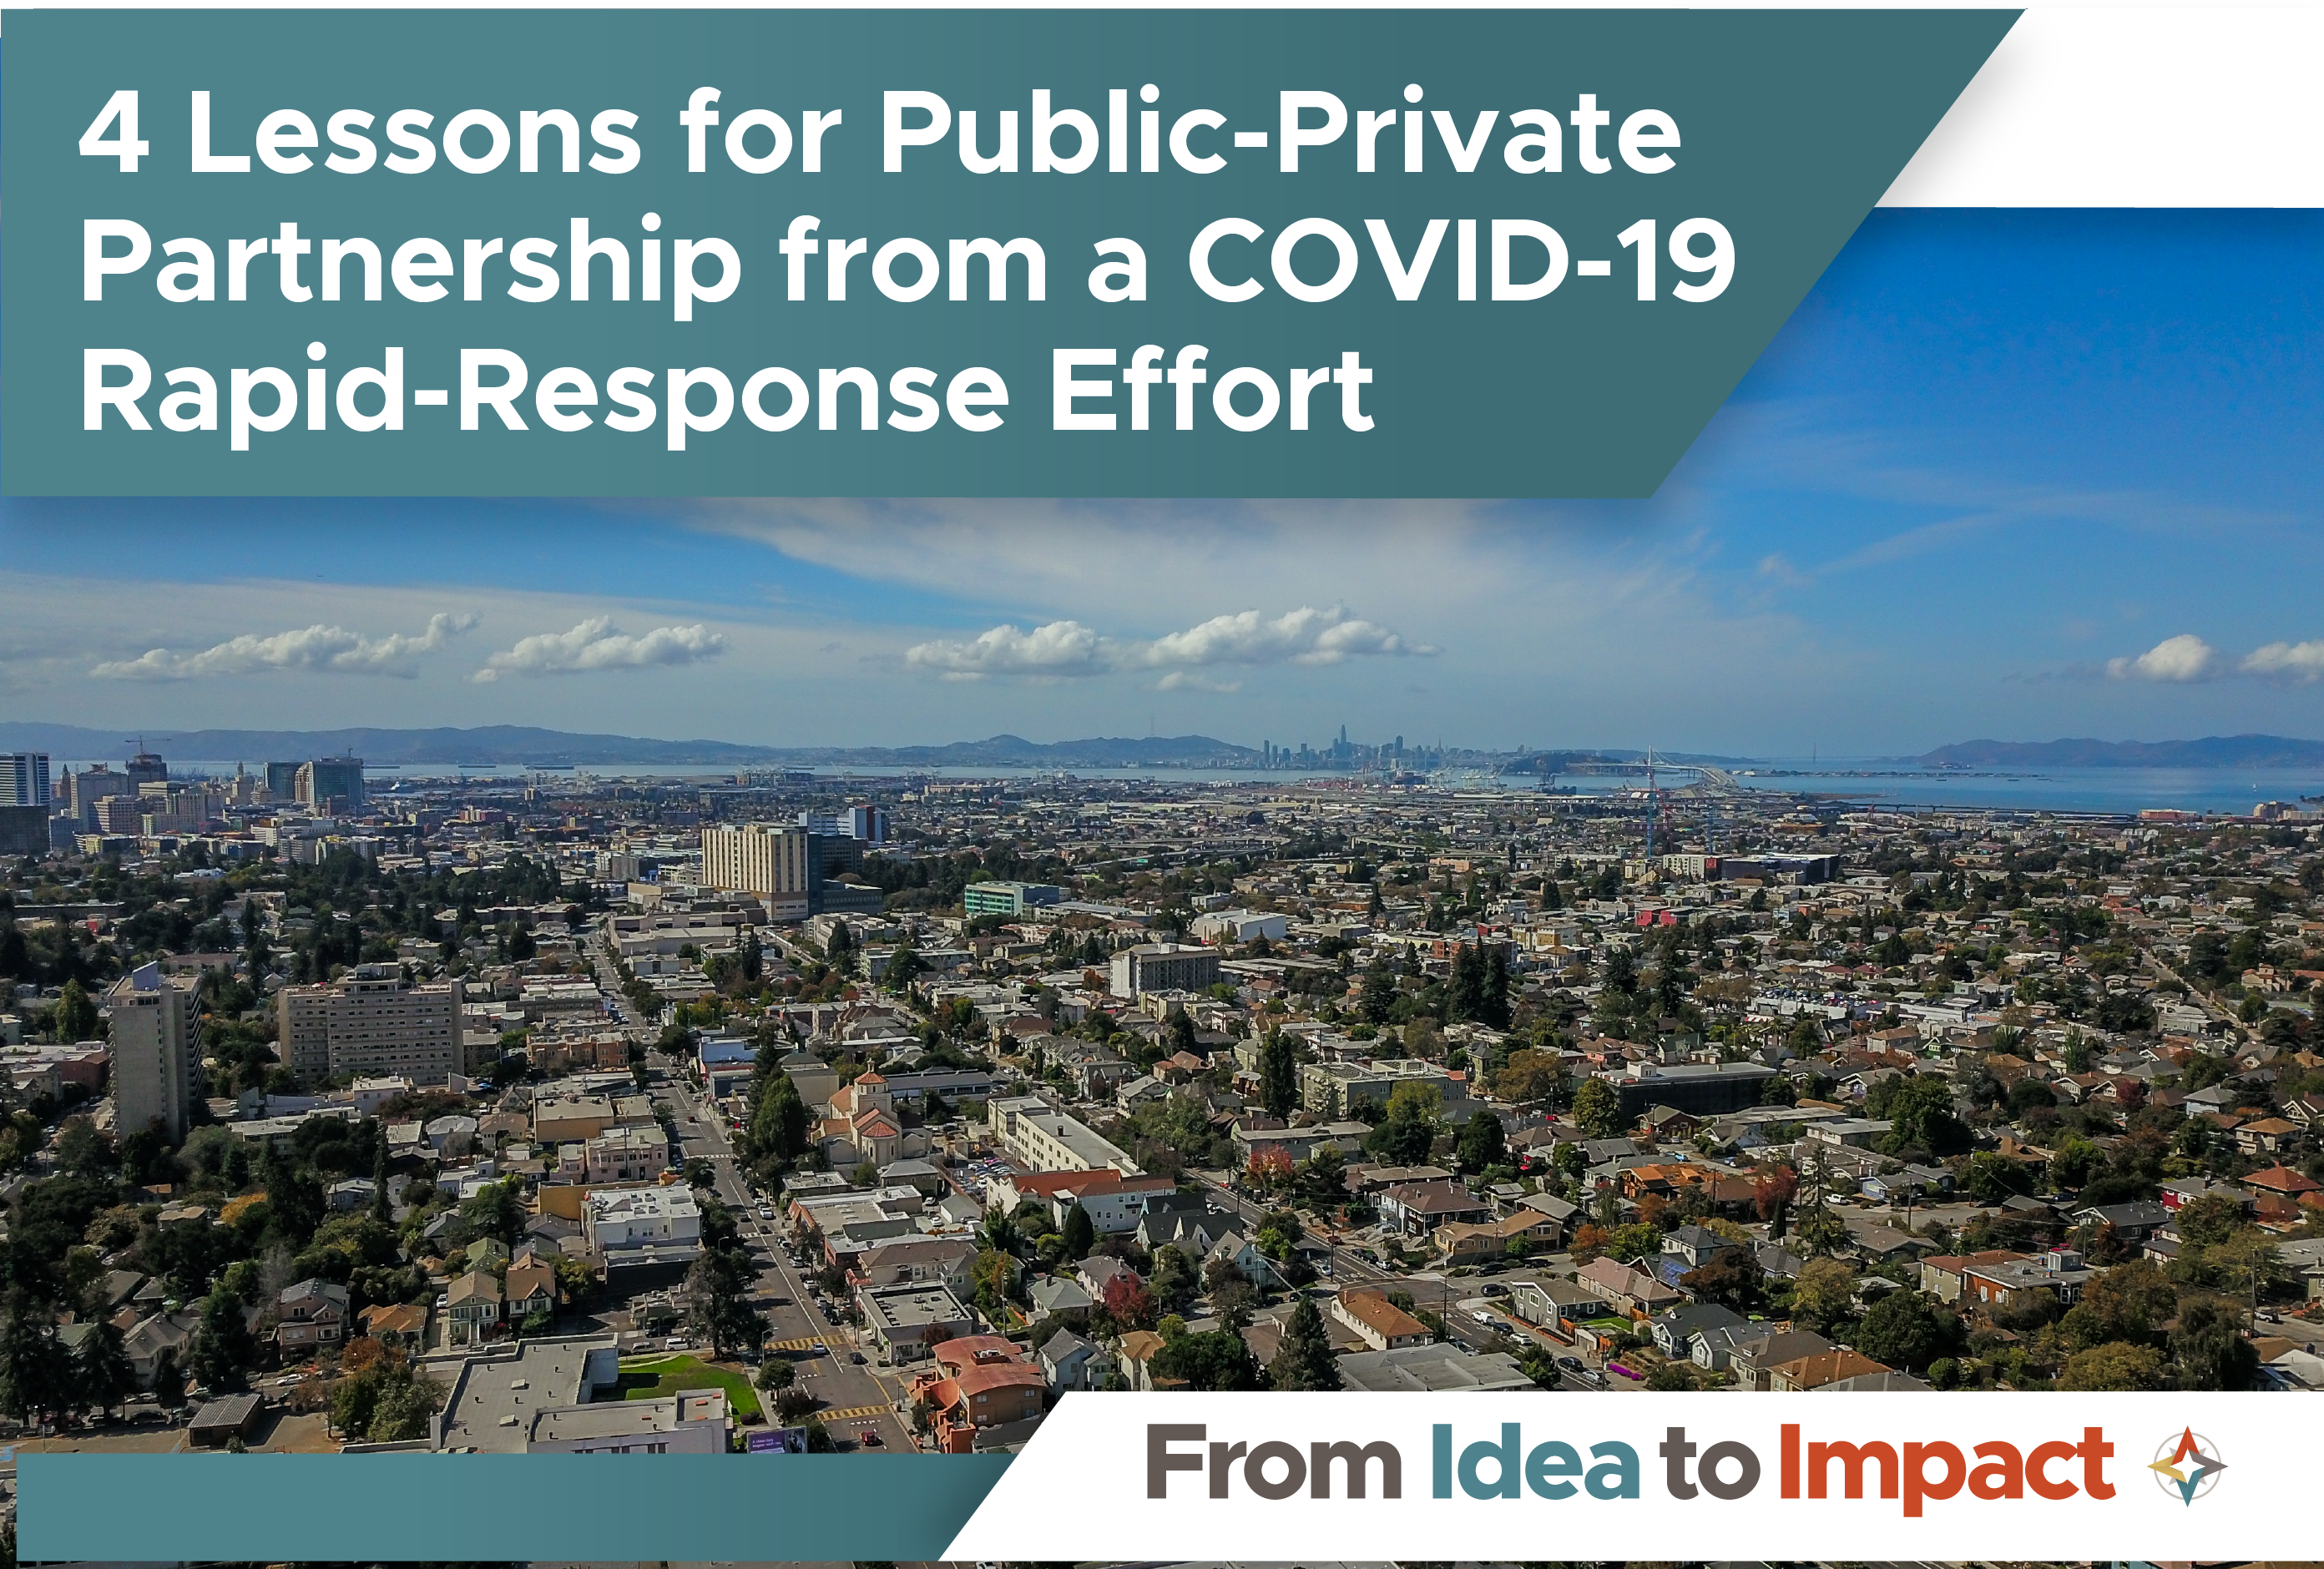 4 Lessons For Public-Private Partnership from a COVID-19 Rapid-Response Effort